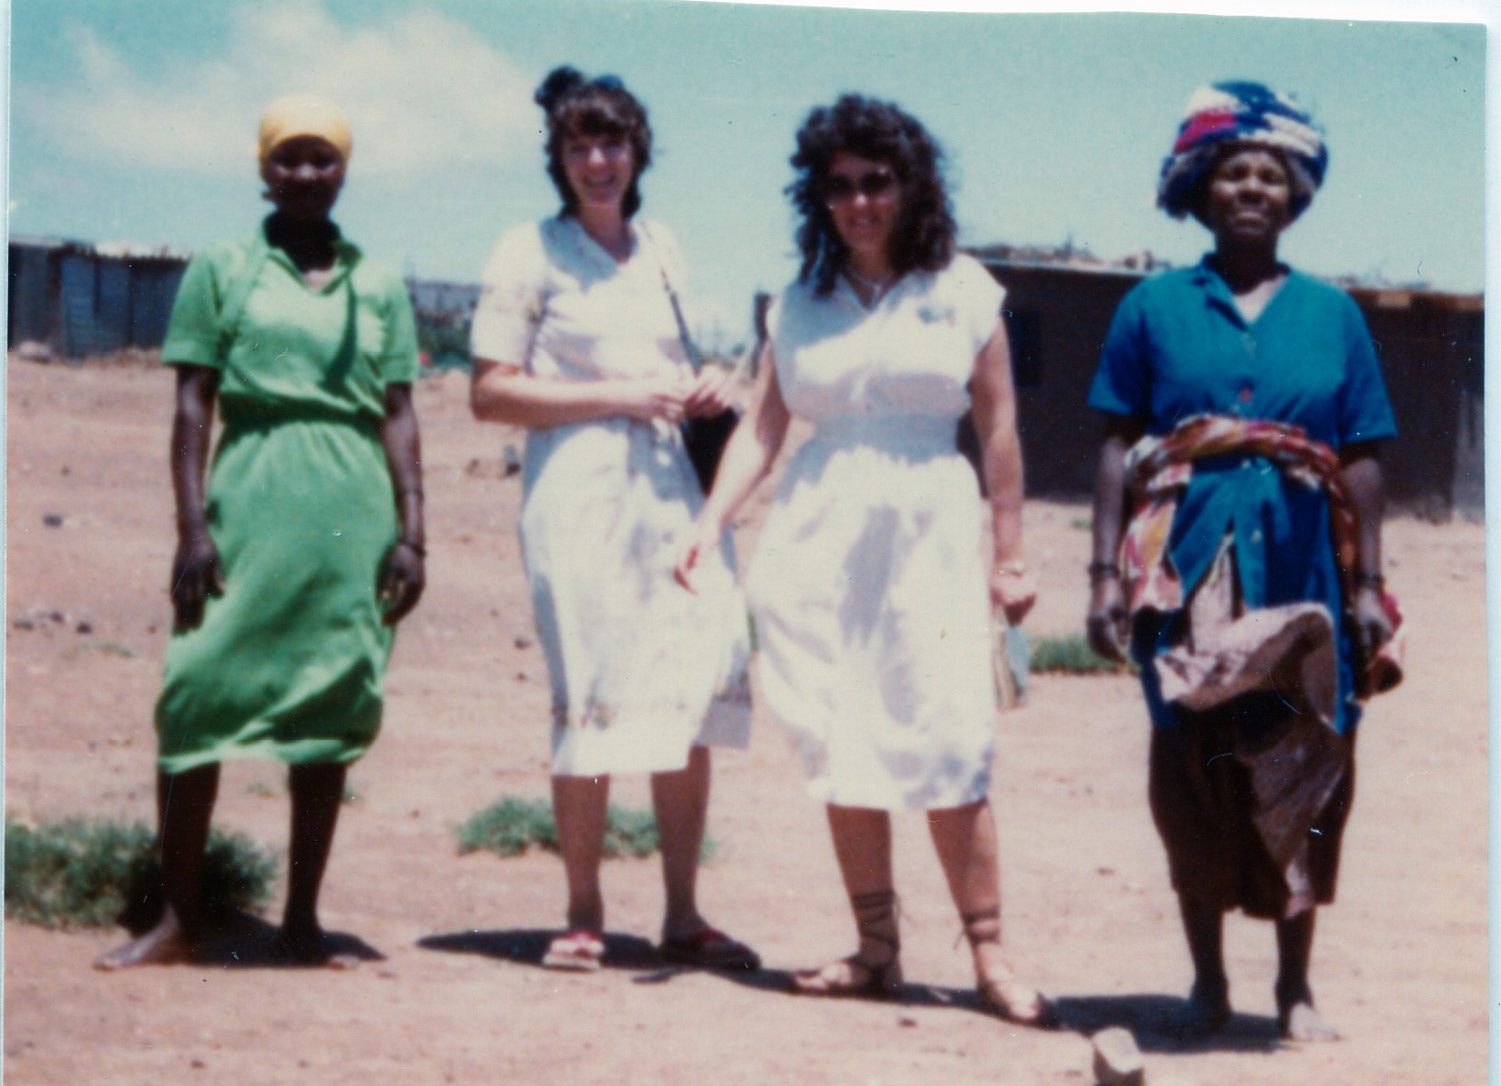 Sister Judy Brummer as a missionary in Queenstown, South Africa, circa 1980. A native of South Africa, Brummer, second from the right, was the first Latter-day Saint missionary fluent in the Xhosa language. (Photograph in family possession, courtesy of Judy Brummer.)